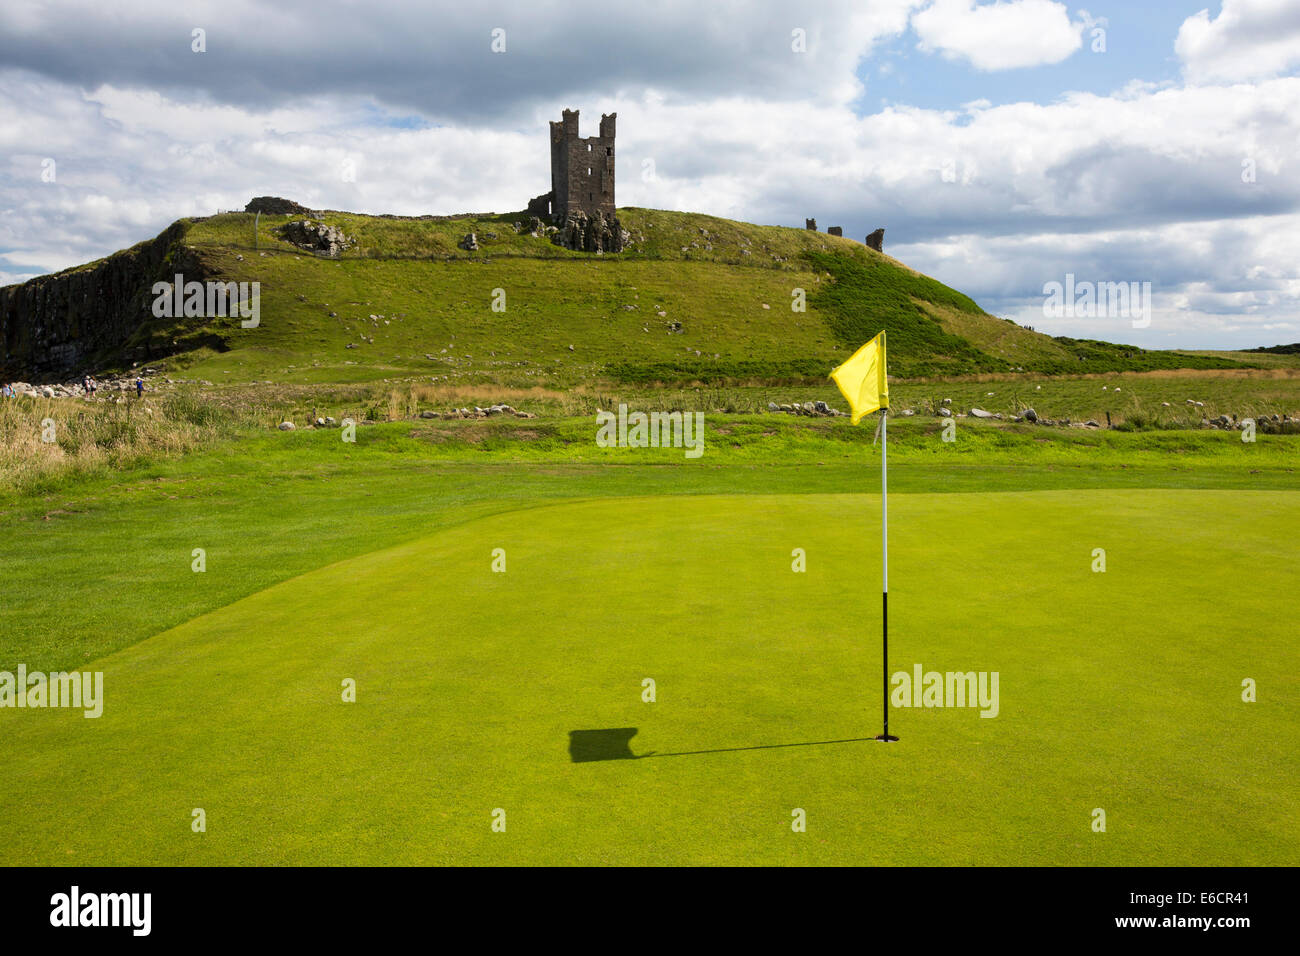 Dunstanburgh Castle and gof course near Craster in Northumberland, UK. - Stock Image